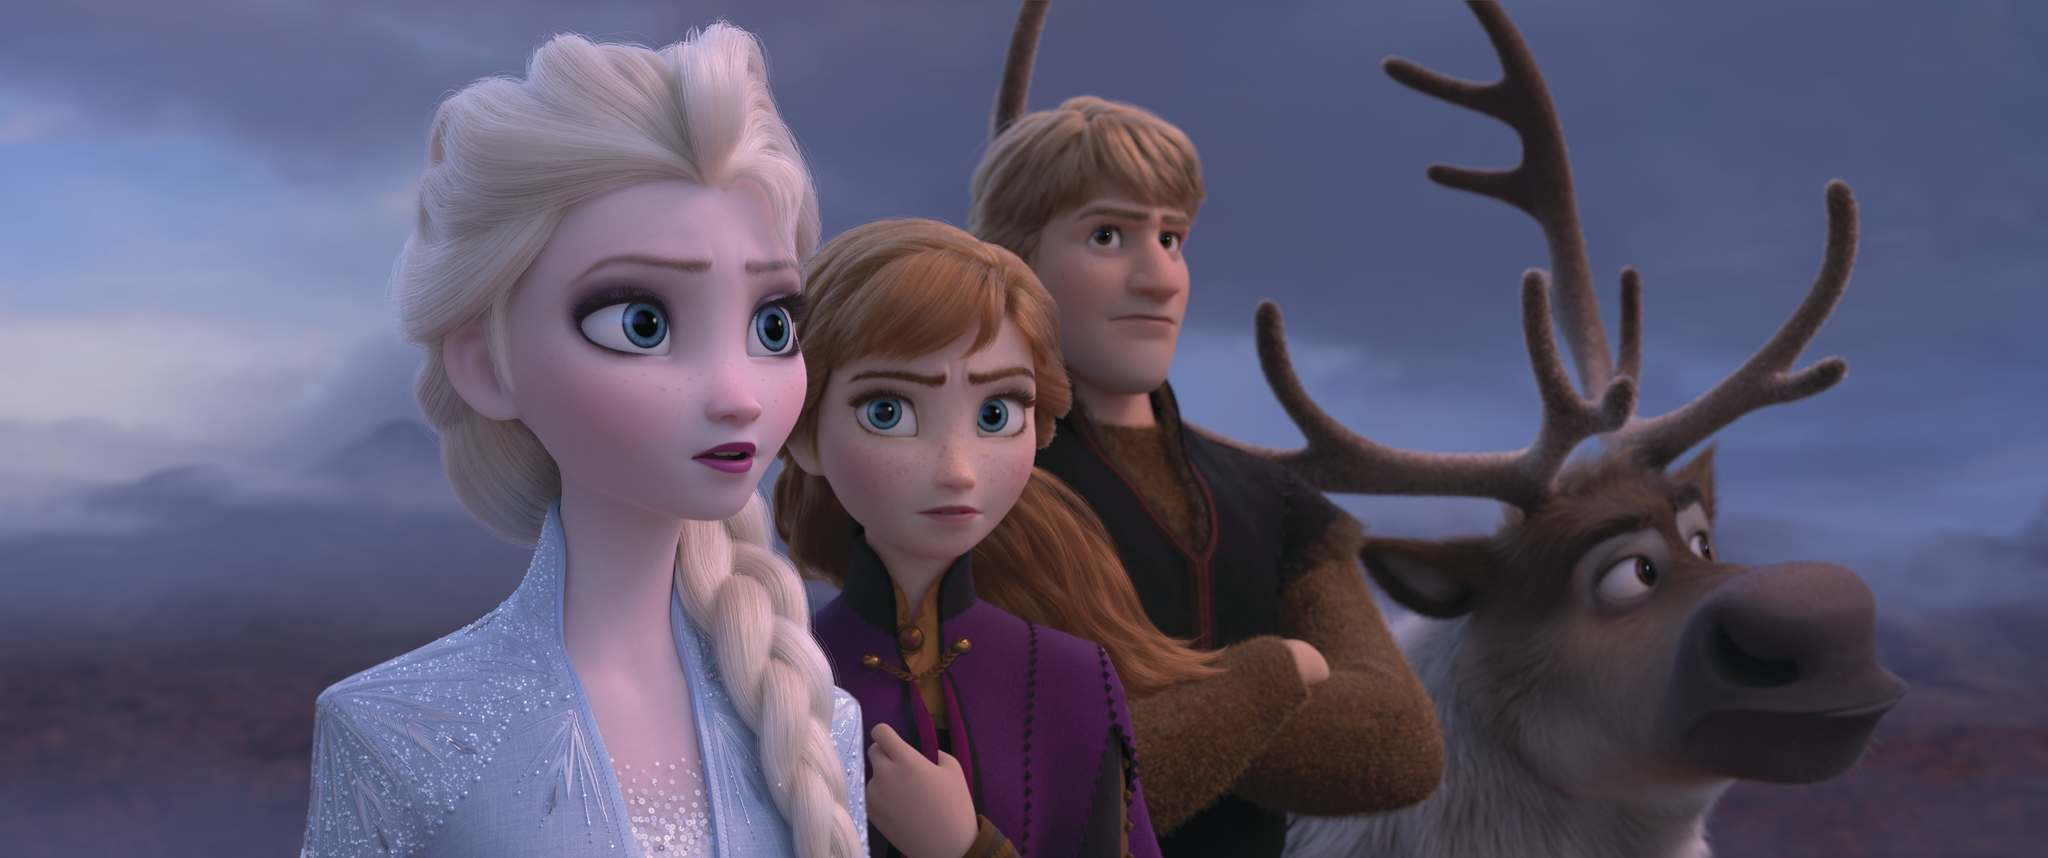 Disney</p><p>Frozen 2, directed by Jennifer Lee and Chris Buck, opens in theatres on Nov. 22.</p>